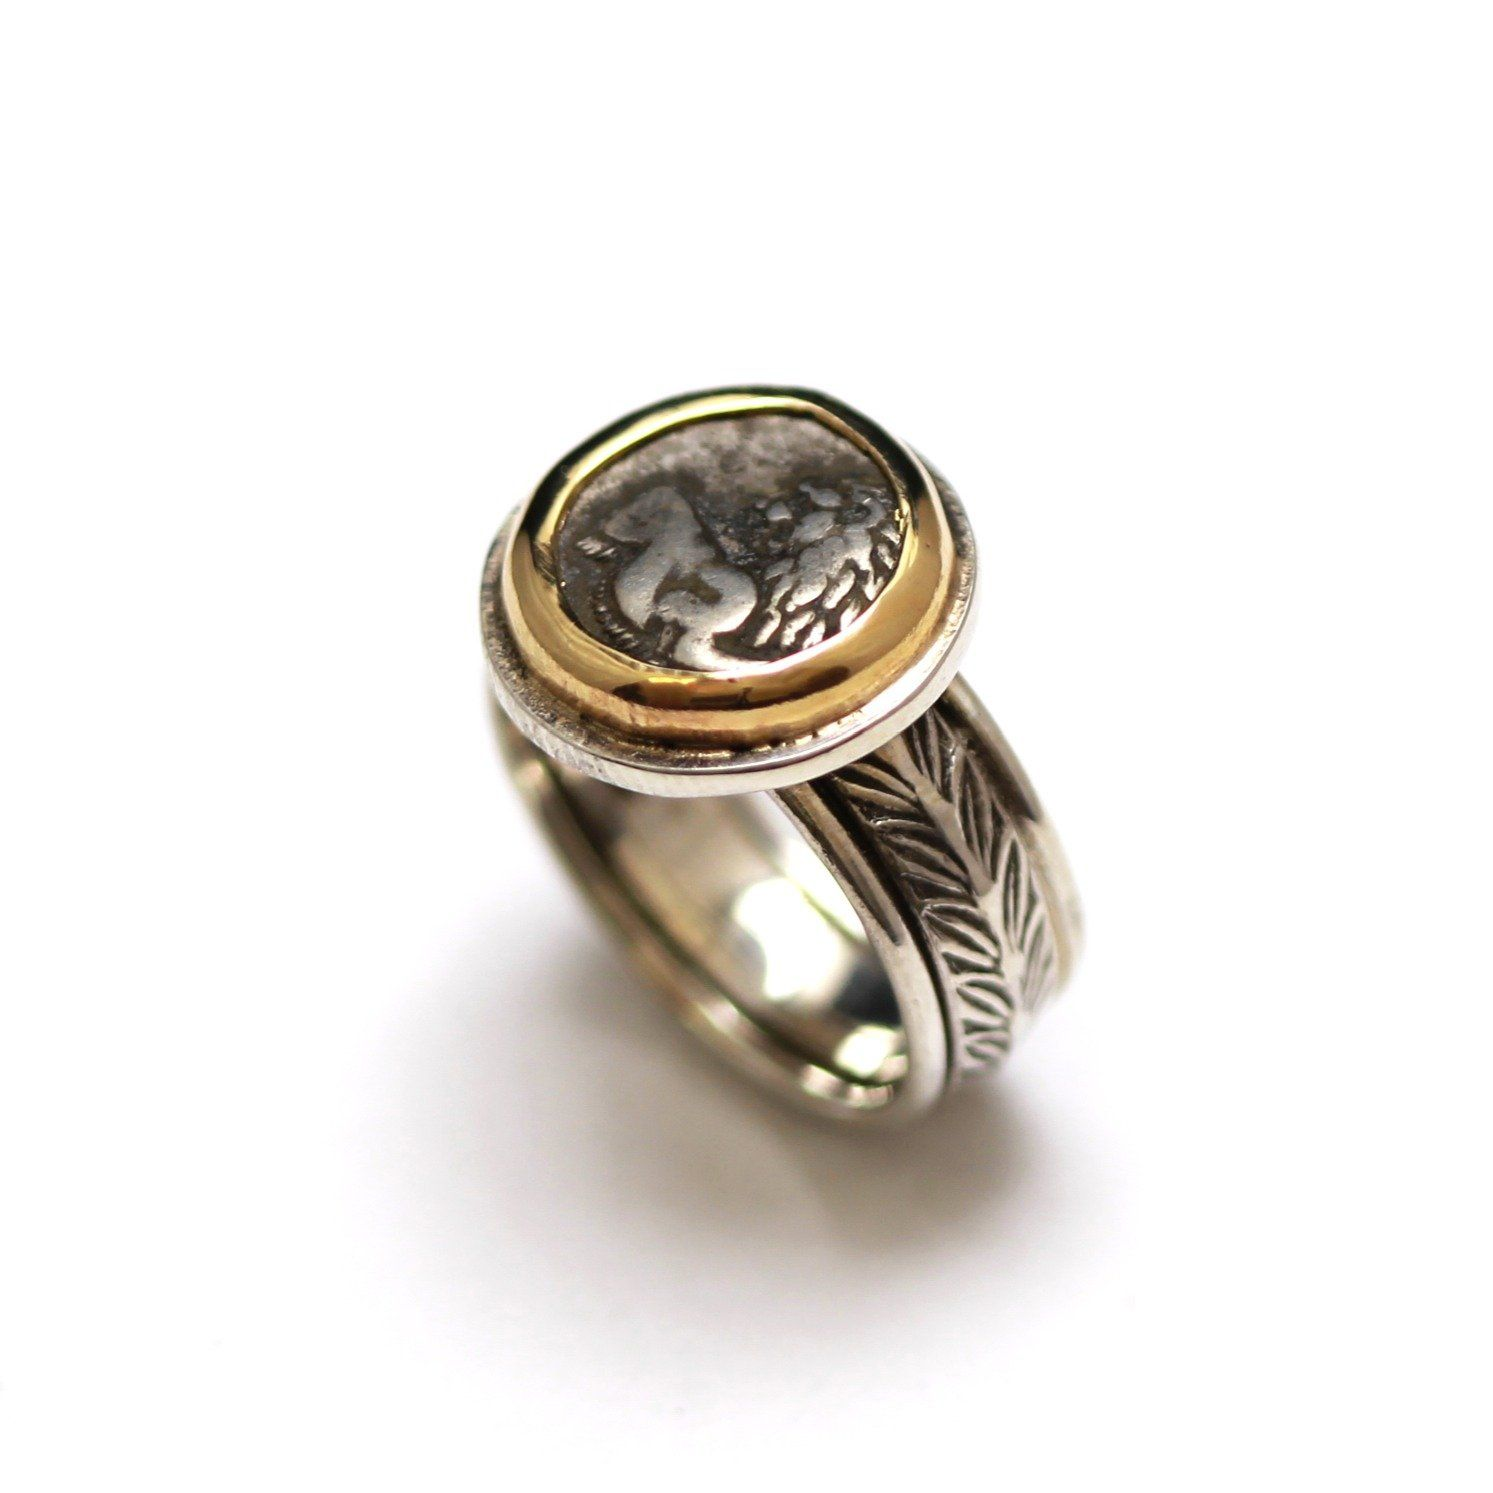 14K Gold Bezel, Sterling Silver Engraved Ring, Ancient Greek , ID13354 - Erez Ancient Coin Jewelry, ancient coin jewelry, men jewelry, genuine ancient coins, made in the US